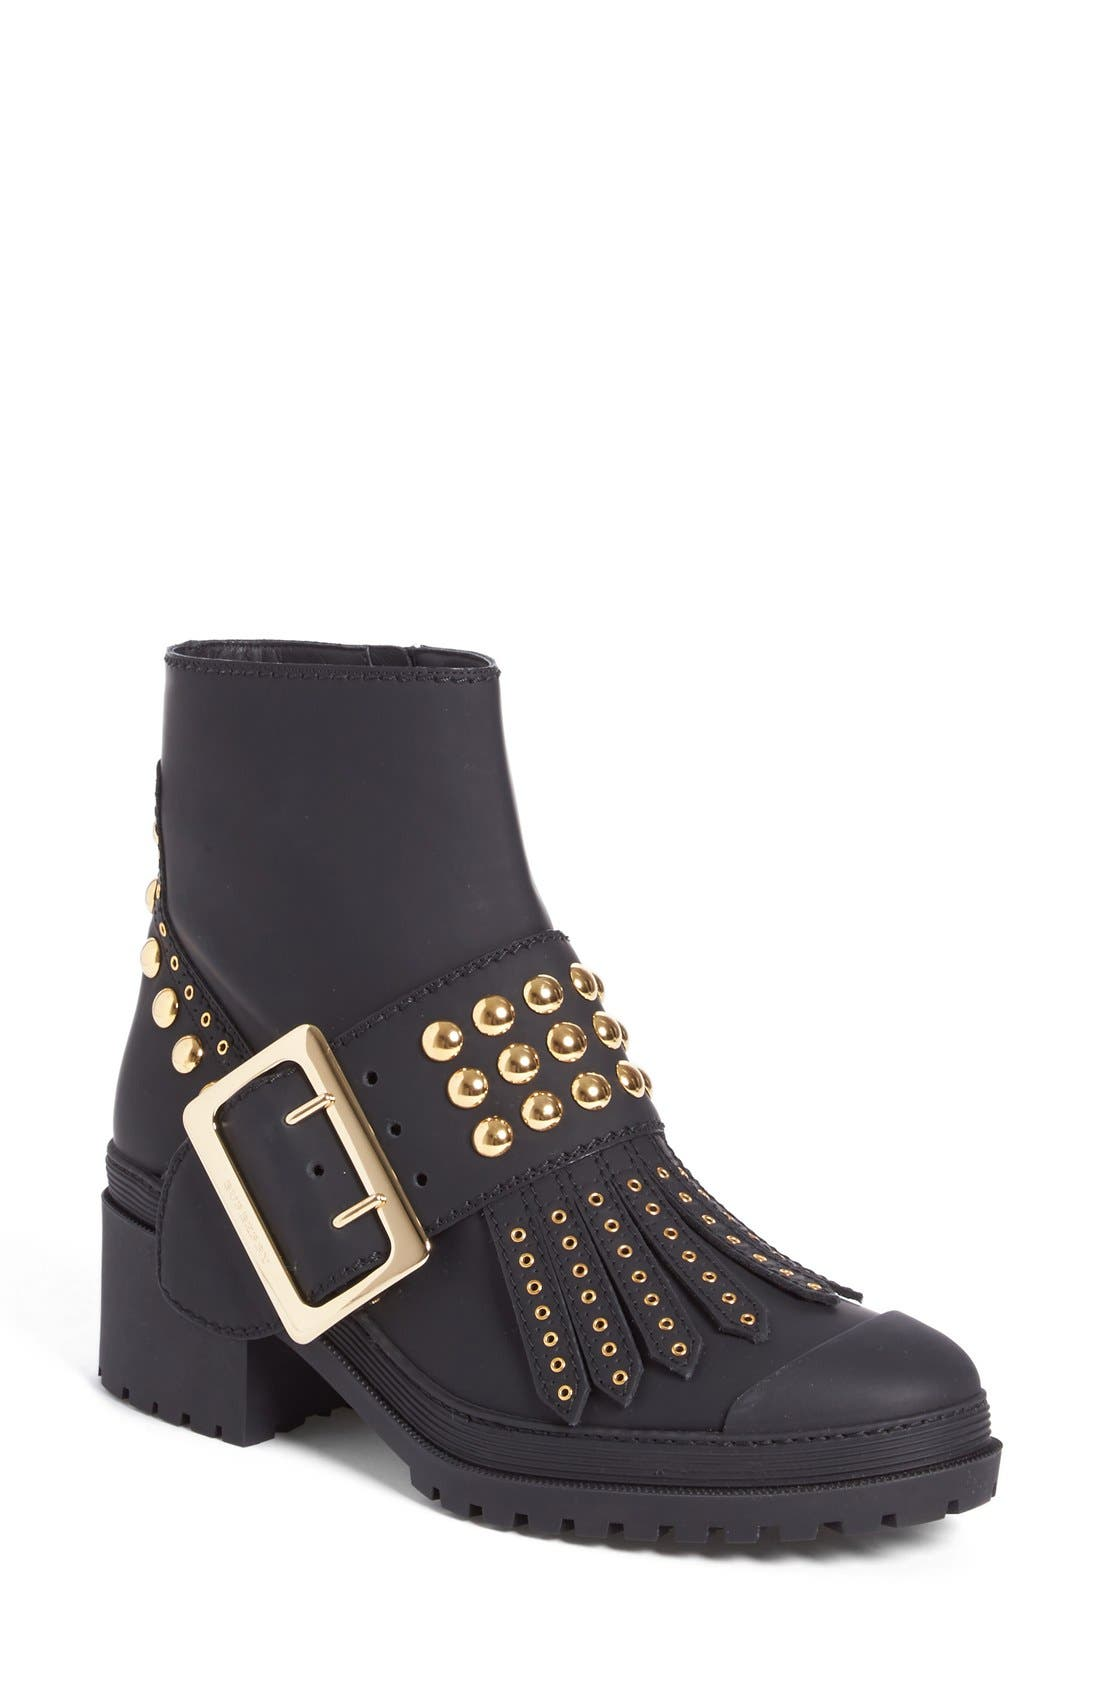 Alternate Image 1 Selected - Burberry 'Whitchester' Boot (Women)